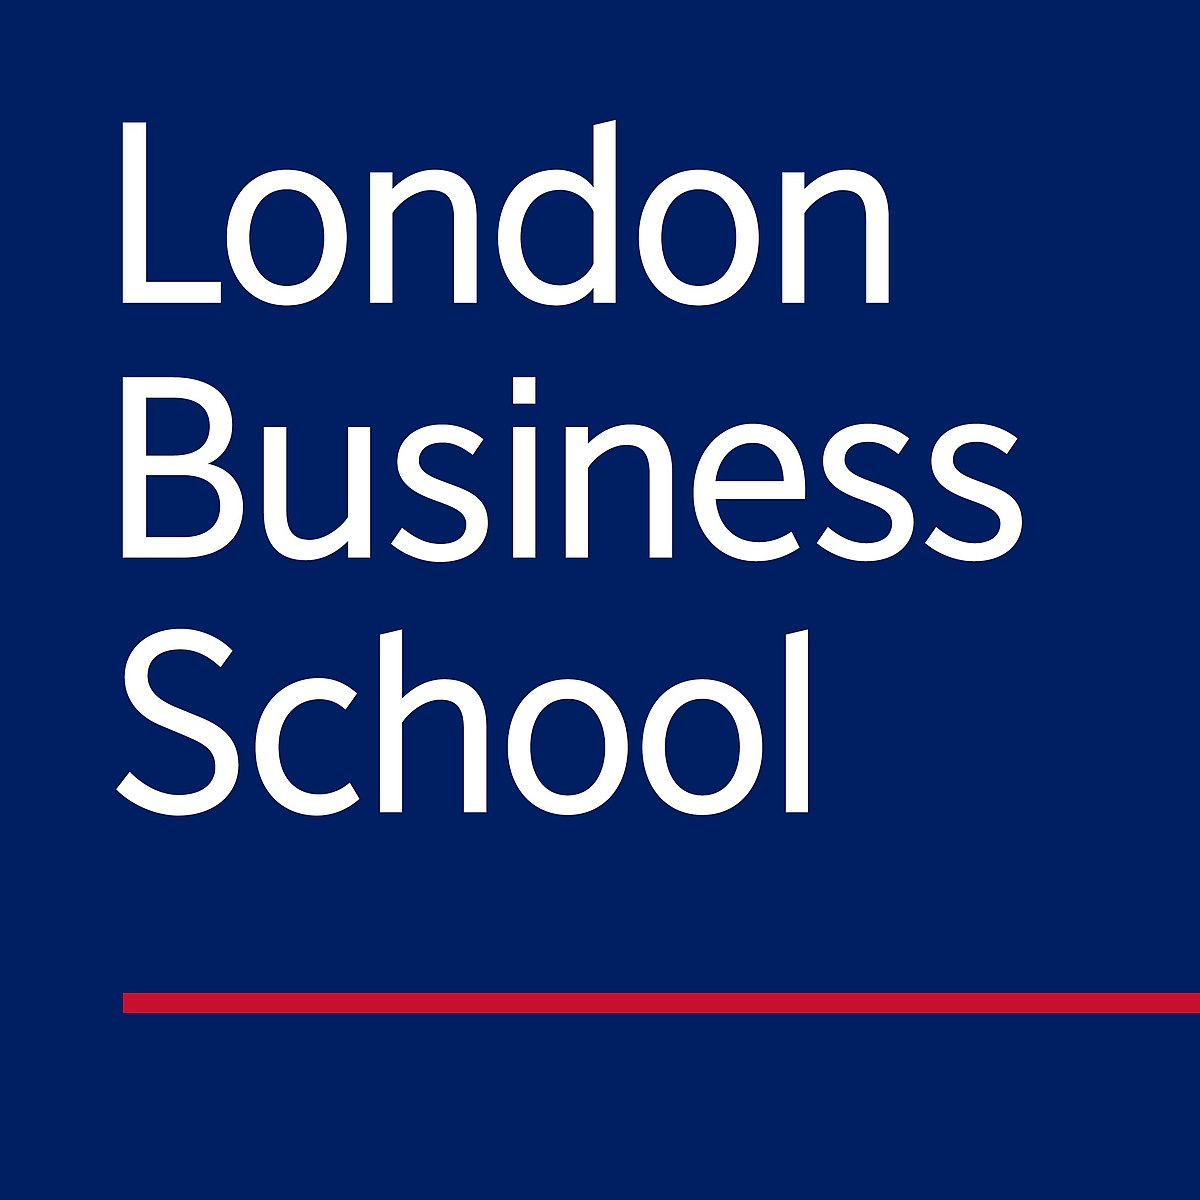 Student Accommodation in London near London Business School